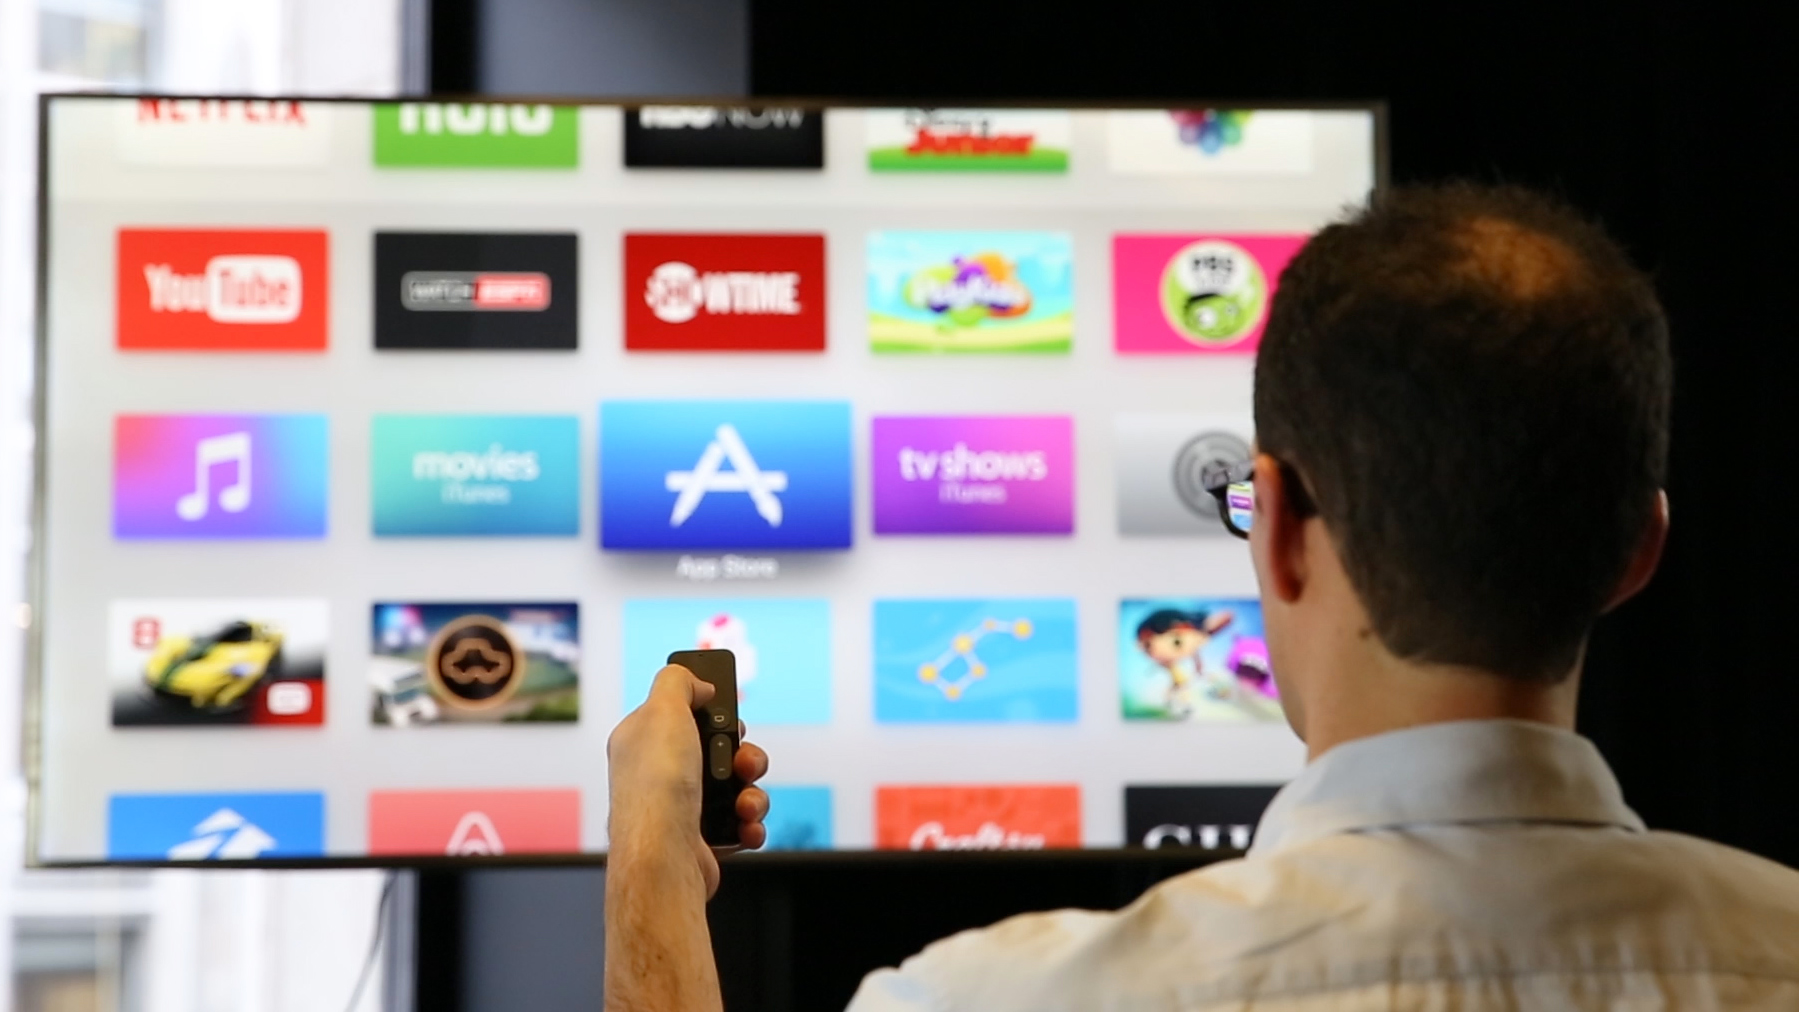 Video: Apple TV: Your iPhone apps and games hit the big screen